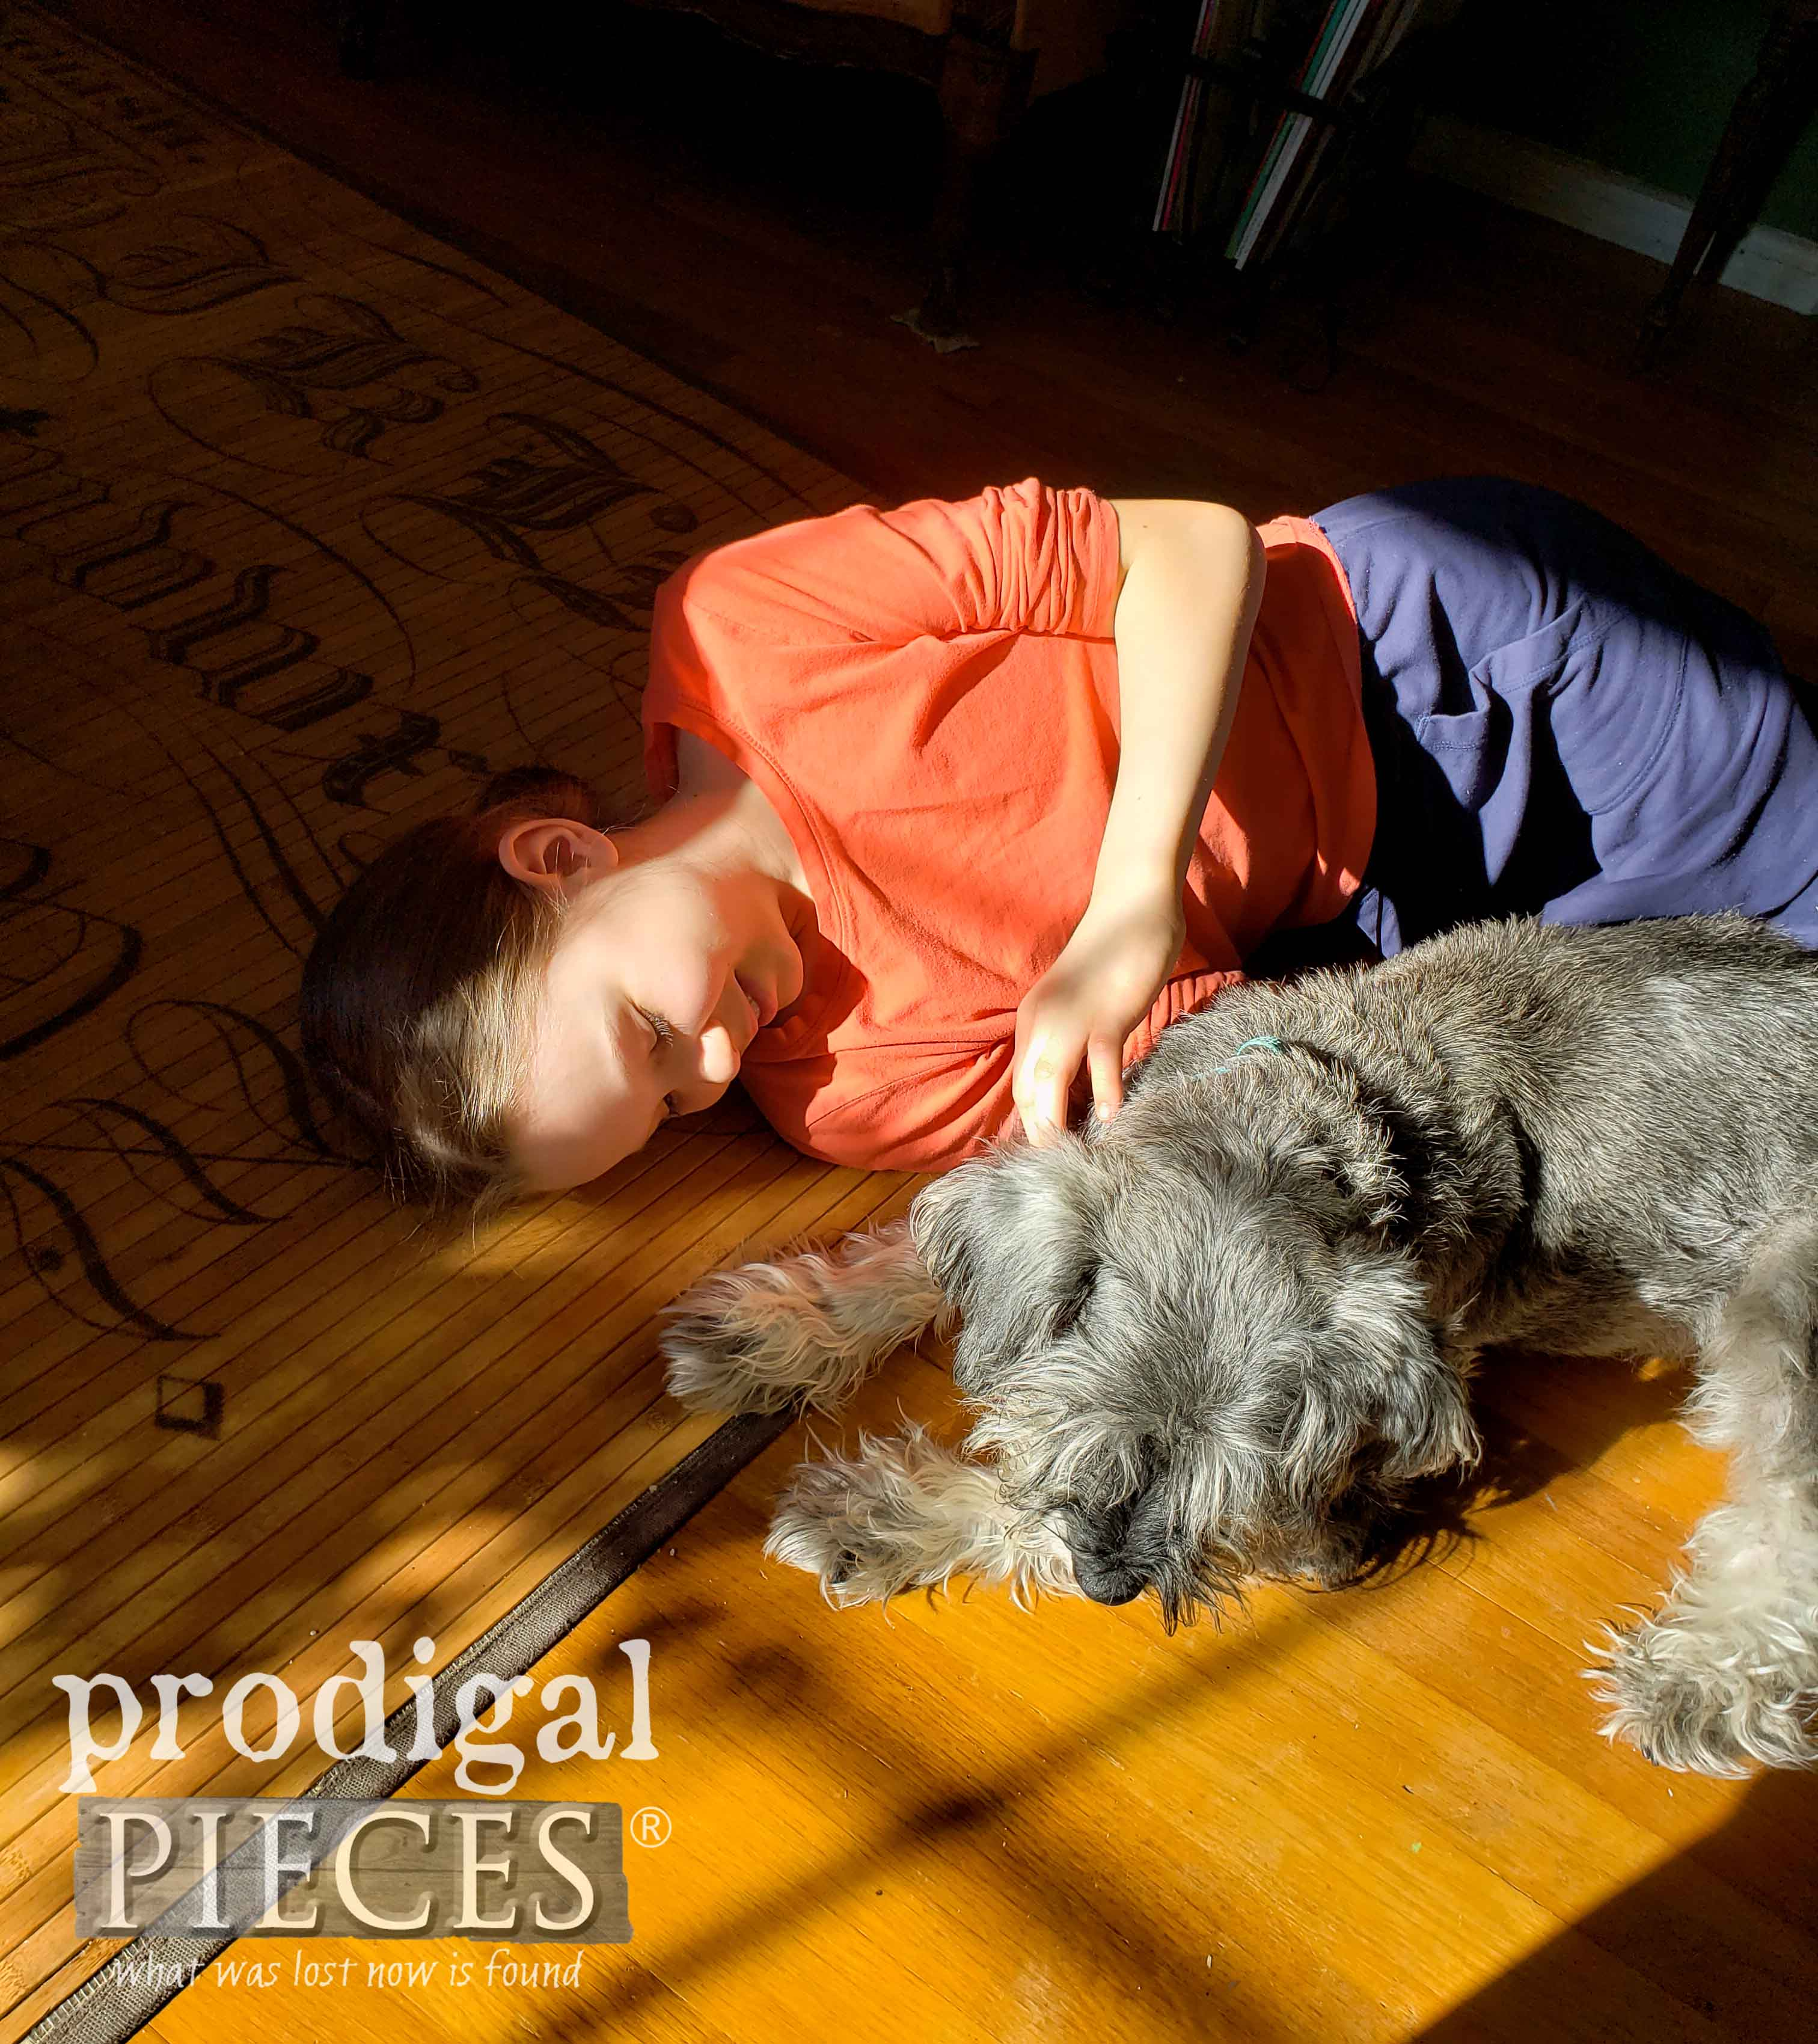 Girl with Dog Laying in a Sun Spot | Prodigal Pieces #homeisthekey campaign for Habitat for Humanity | prodigalpieces.com #prodigalpieces #home